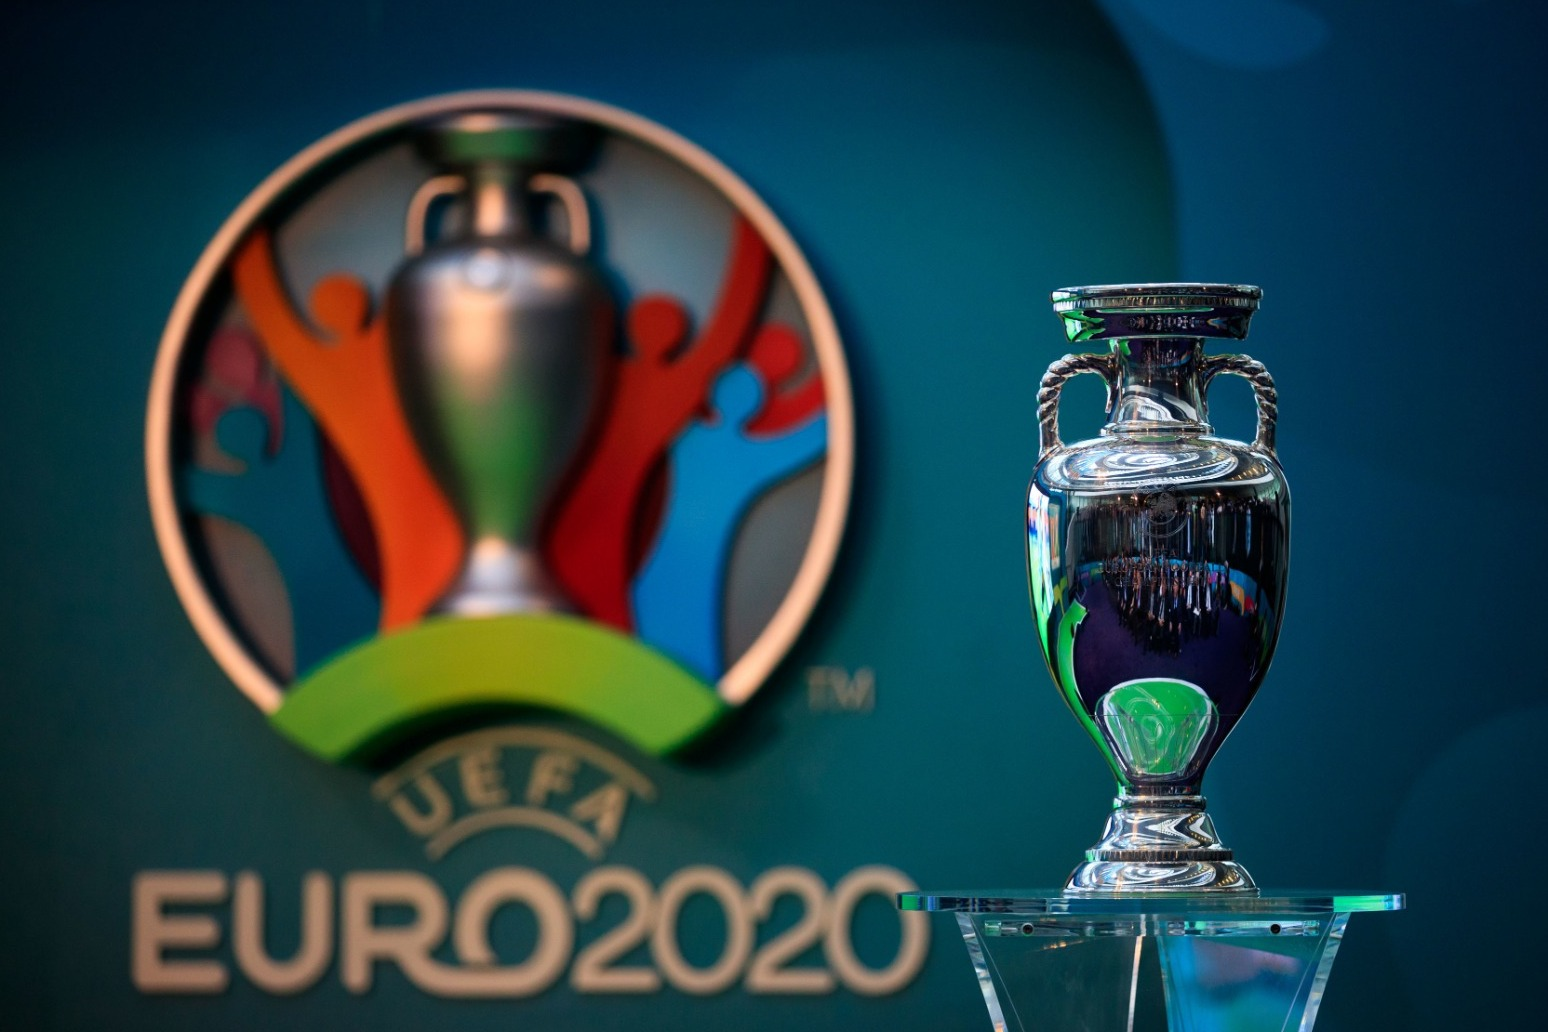 Euro 2020 championships have been postponed by a year